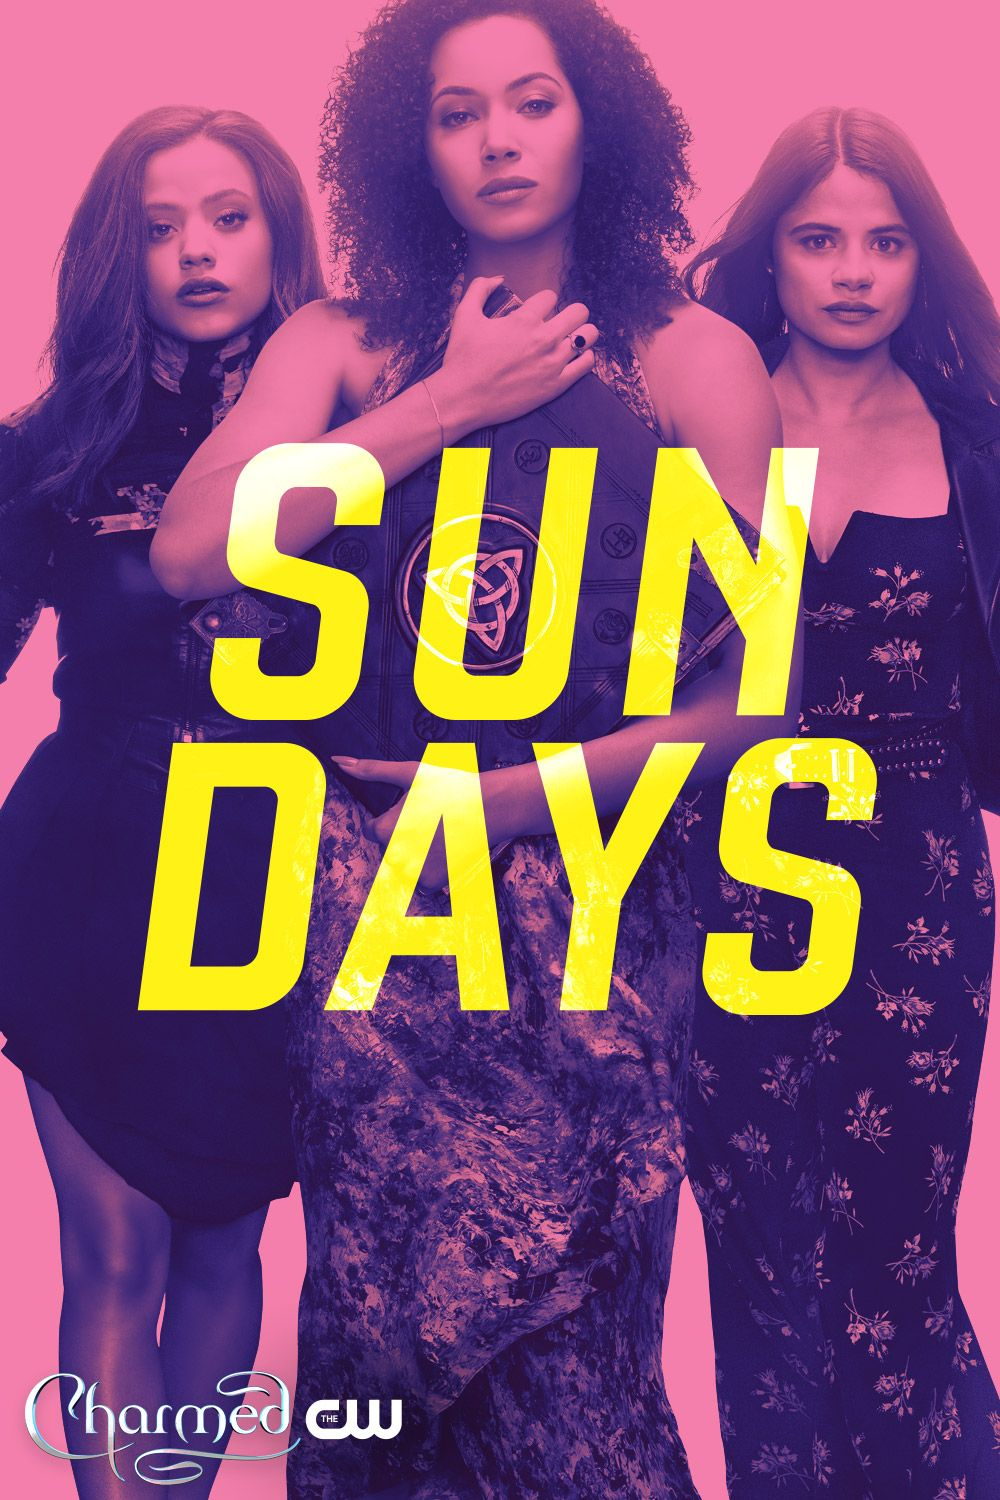 The Power Of Three Charmed Premieres Sunday October 14 On The Cw Stream Free Next Day Only On The Cw App Charmed Sisters Black Magic Woman Sarah Jeffery